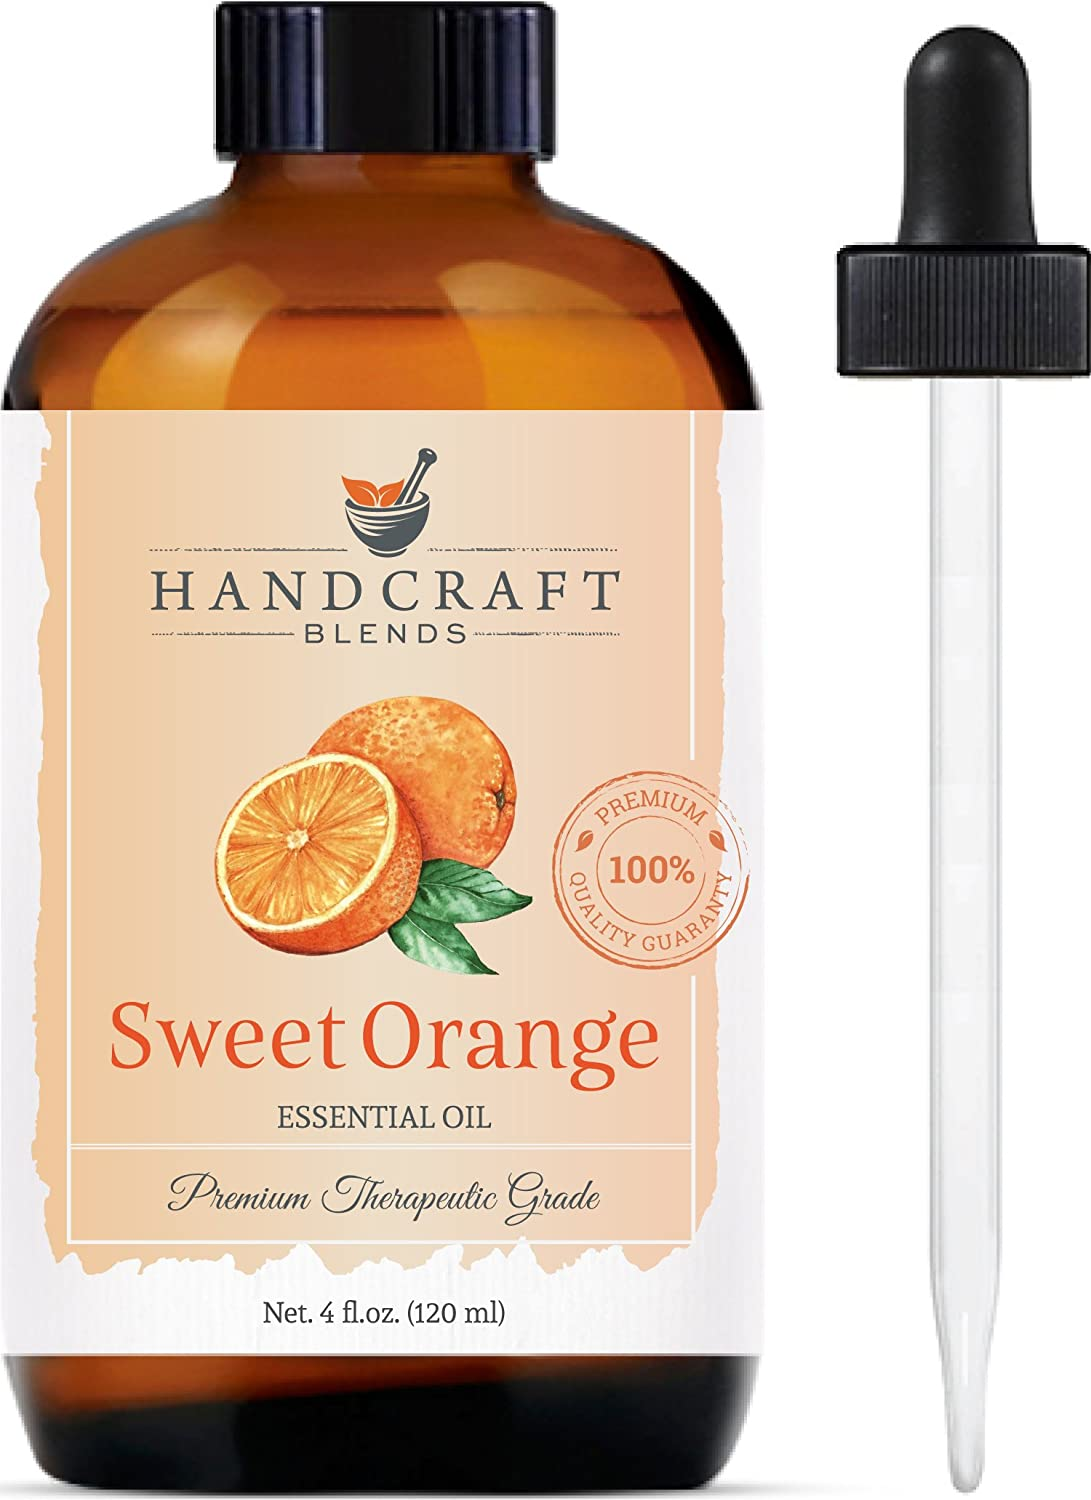 Handcraft Sweet Orange Essential Oil - 100 Percent Pure and Natural - Premium Therapeutic Grade with Premium Glass Dropper - Huge 4 oz